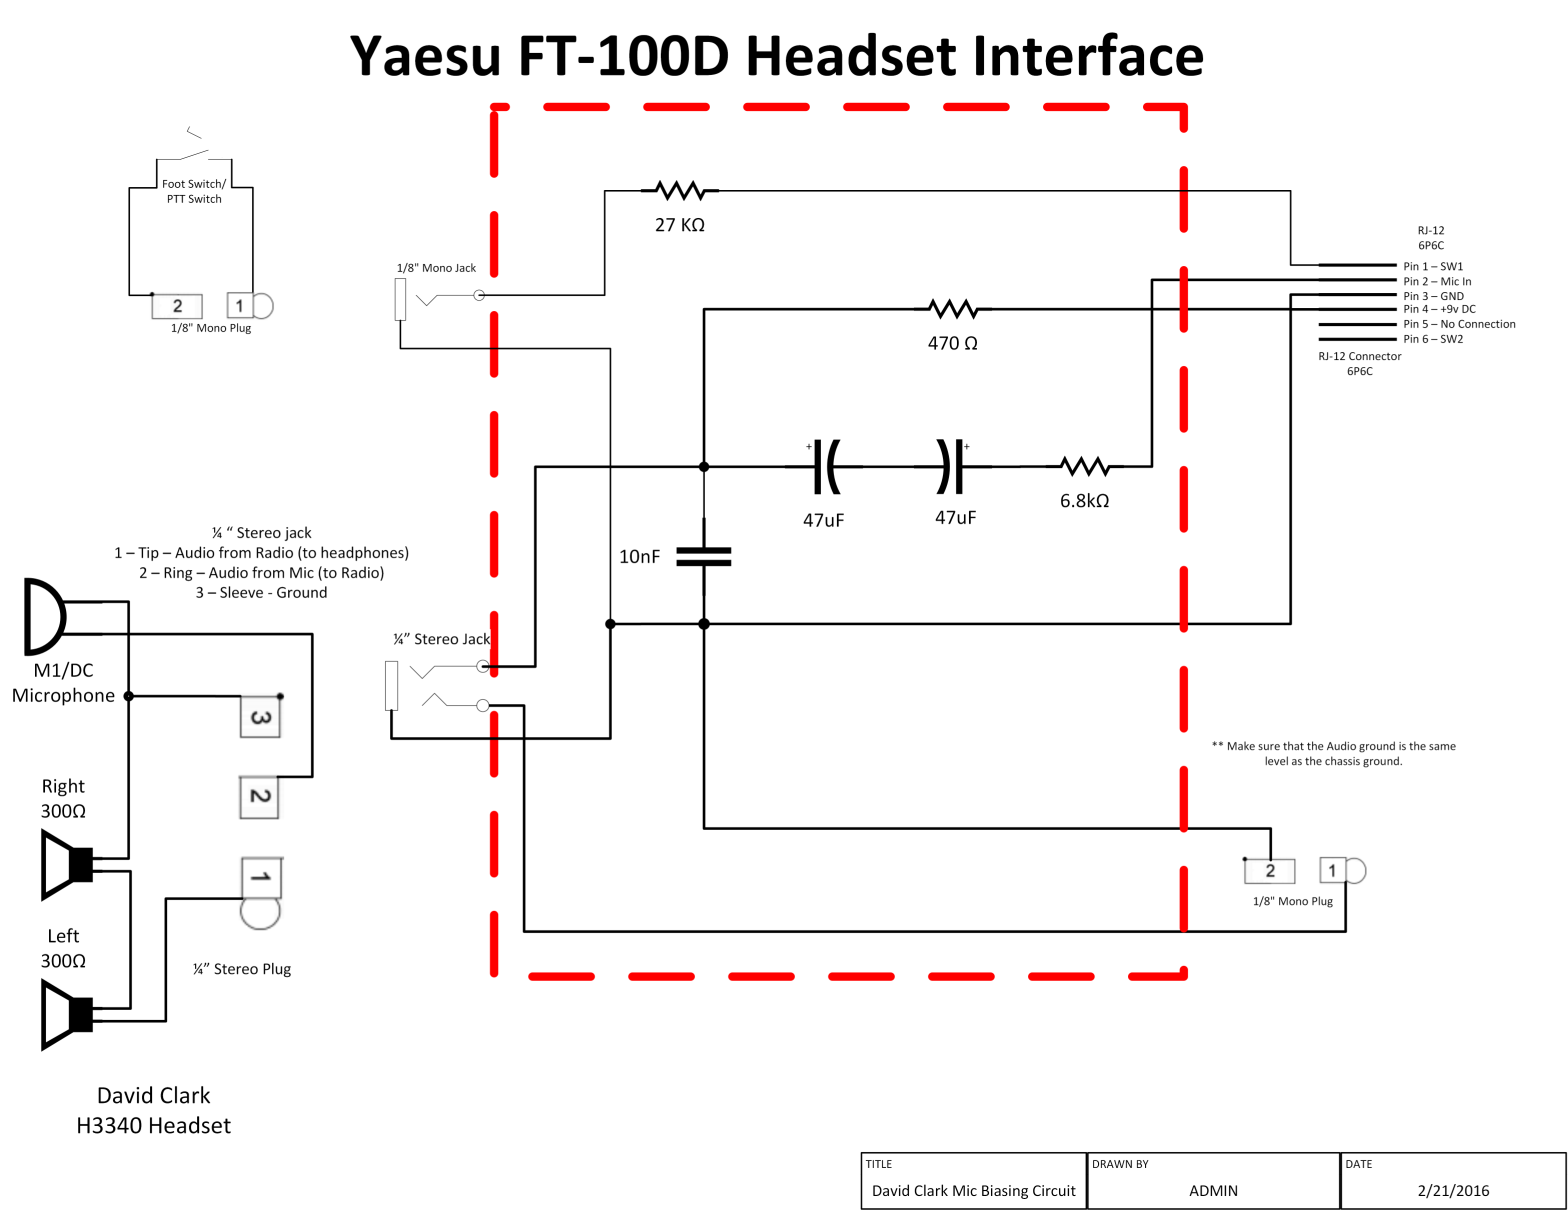 InterfaceCircuitFull connecting a david clark headset to a amateur radio (yaesu ft100 d) david clark headset wiring schematic at readyjetset.co